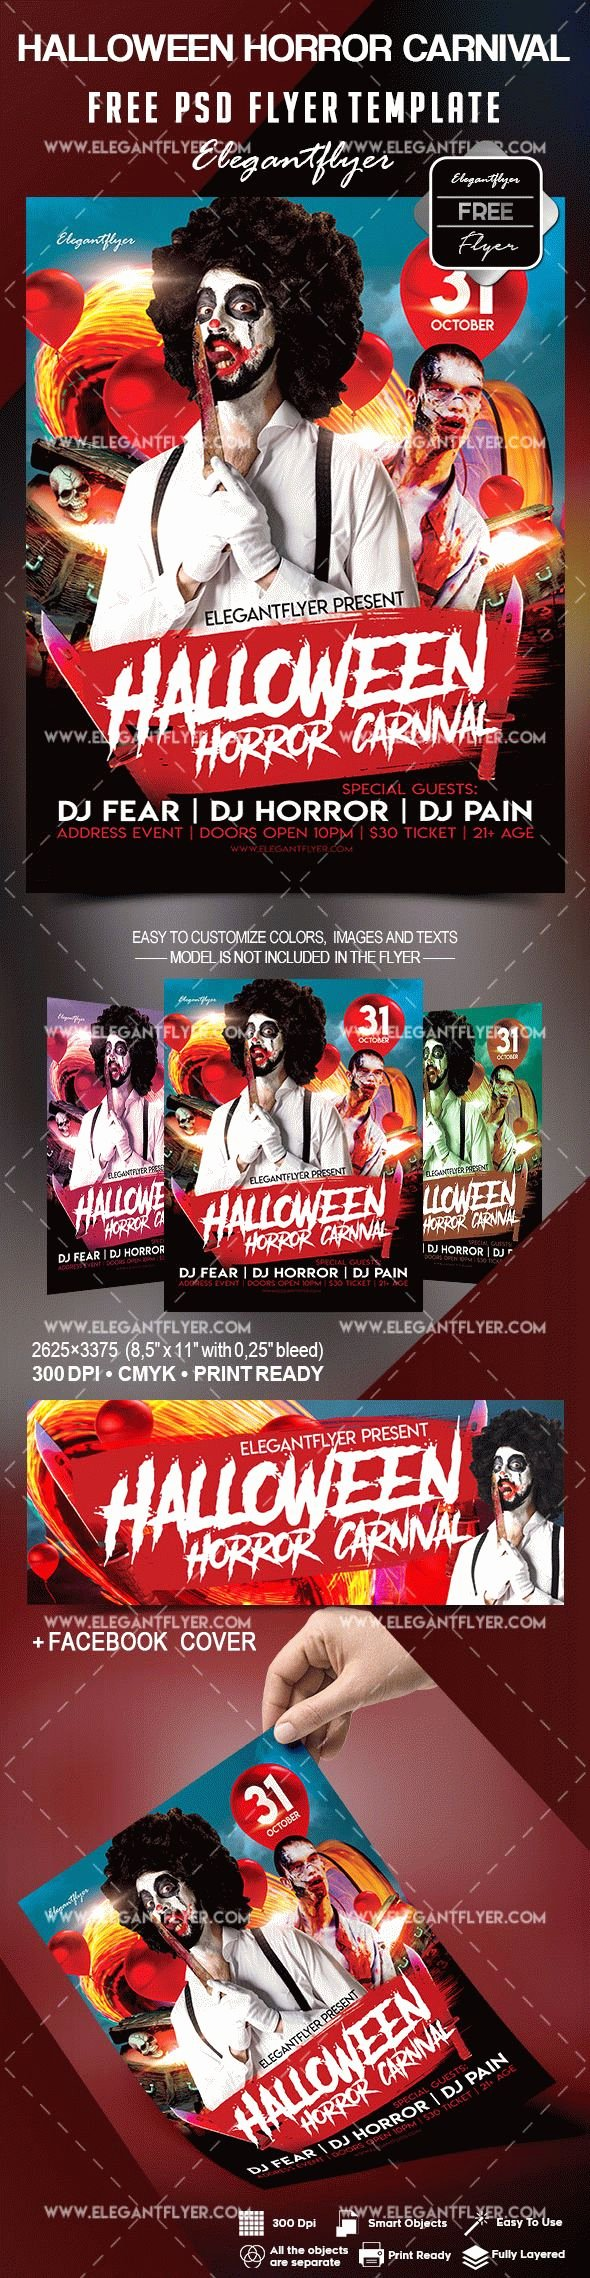 Carnival Flyer Template Free Awesome Free Halloween Horror Carnival Flyer Template – by Elegantflyer